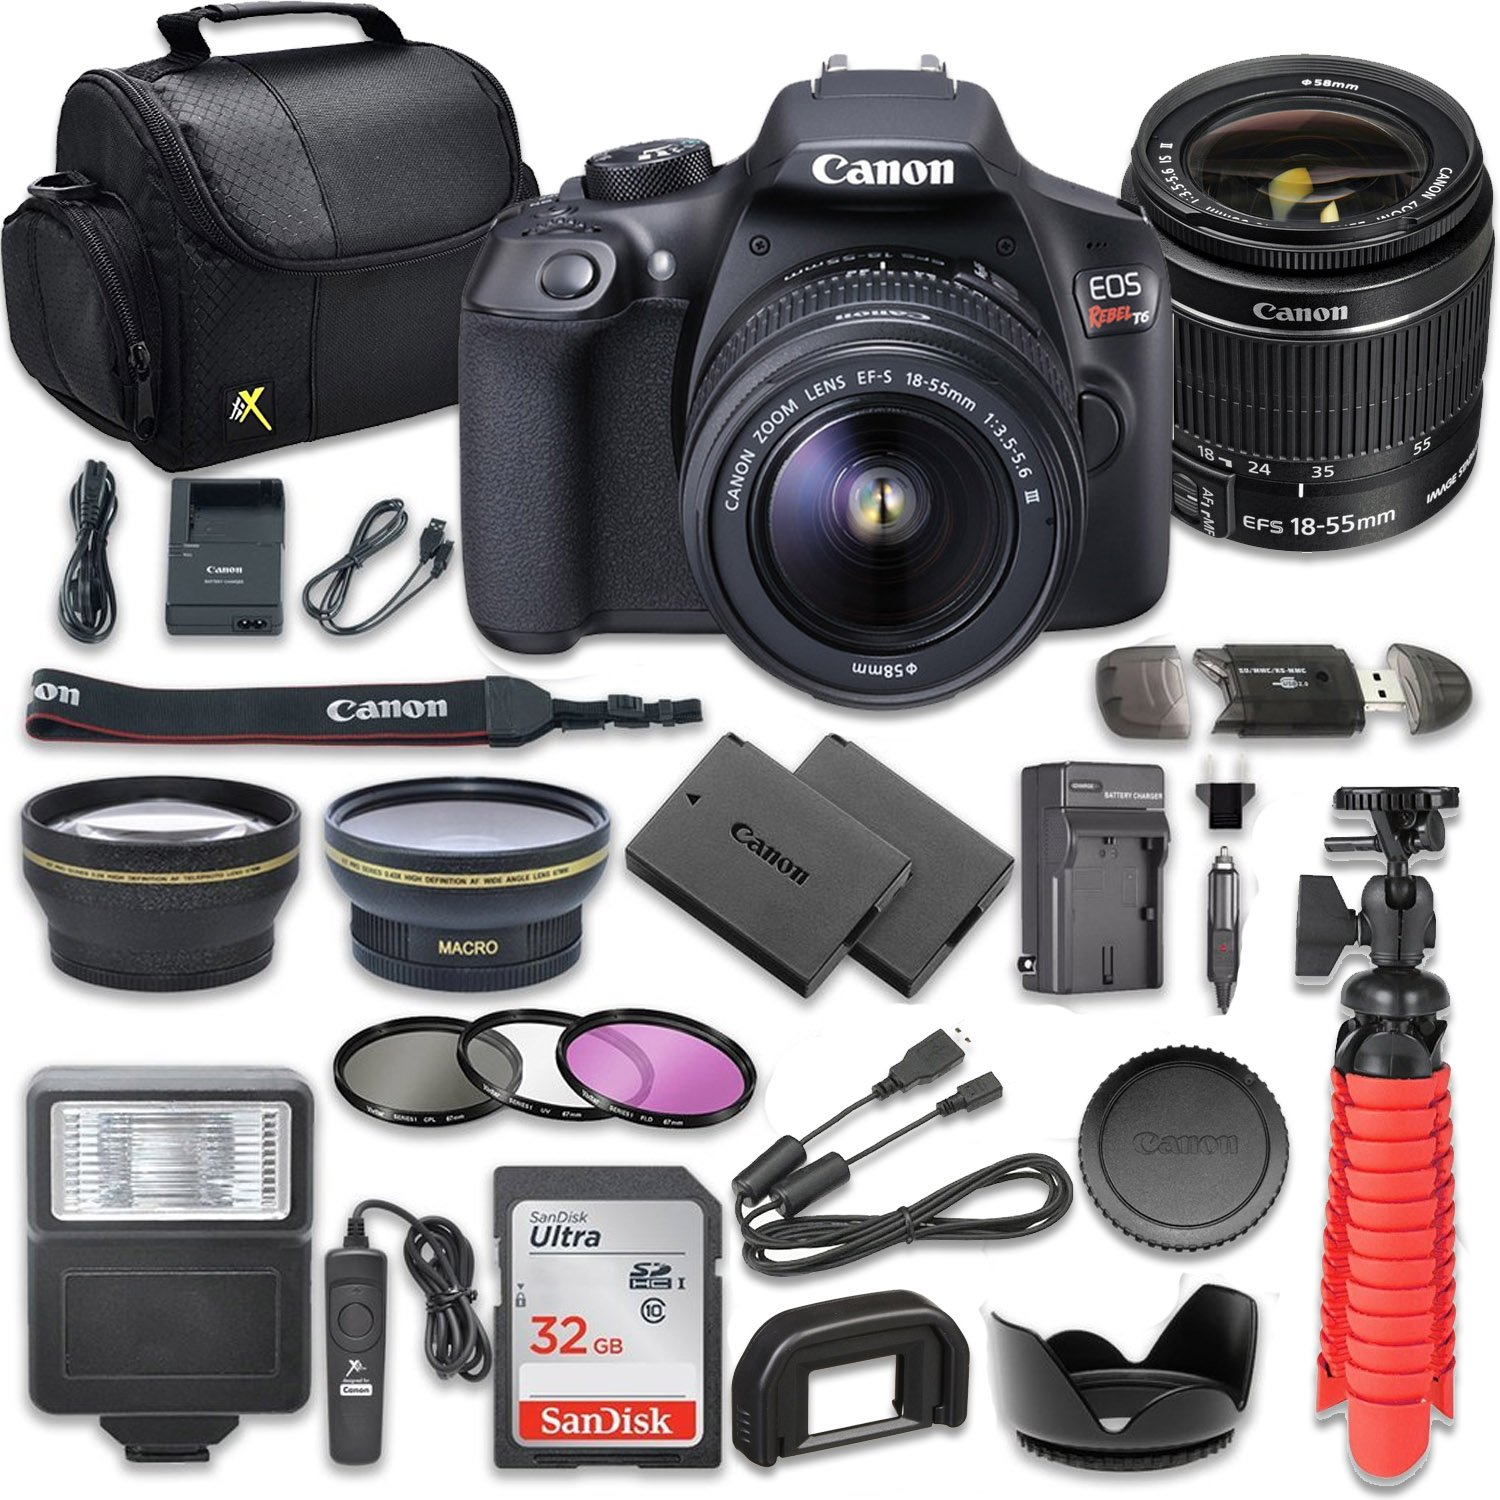 Canon Eos Rebel T6 Dslr Camera Bundle With Canon Ef S 18 55mm F 3 5 5 6 Is Ii Lens Sandisk 32gb Memory Card Accessory Kit